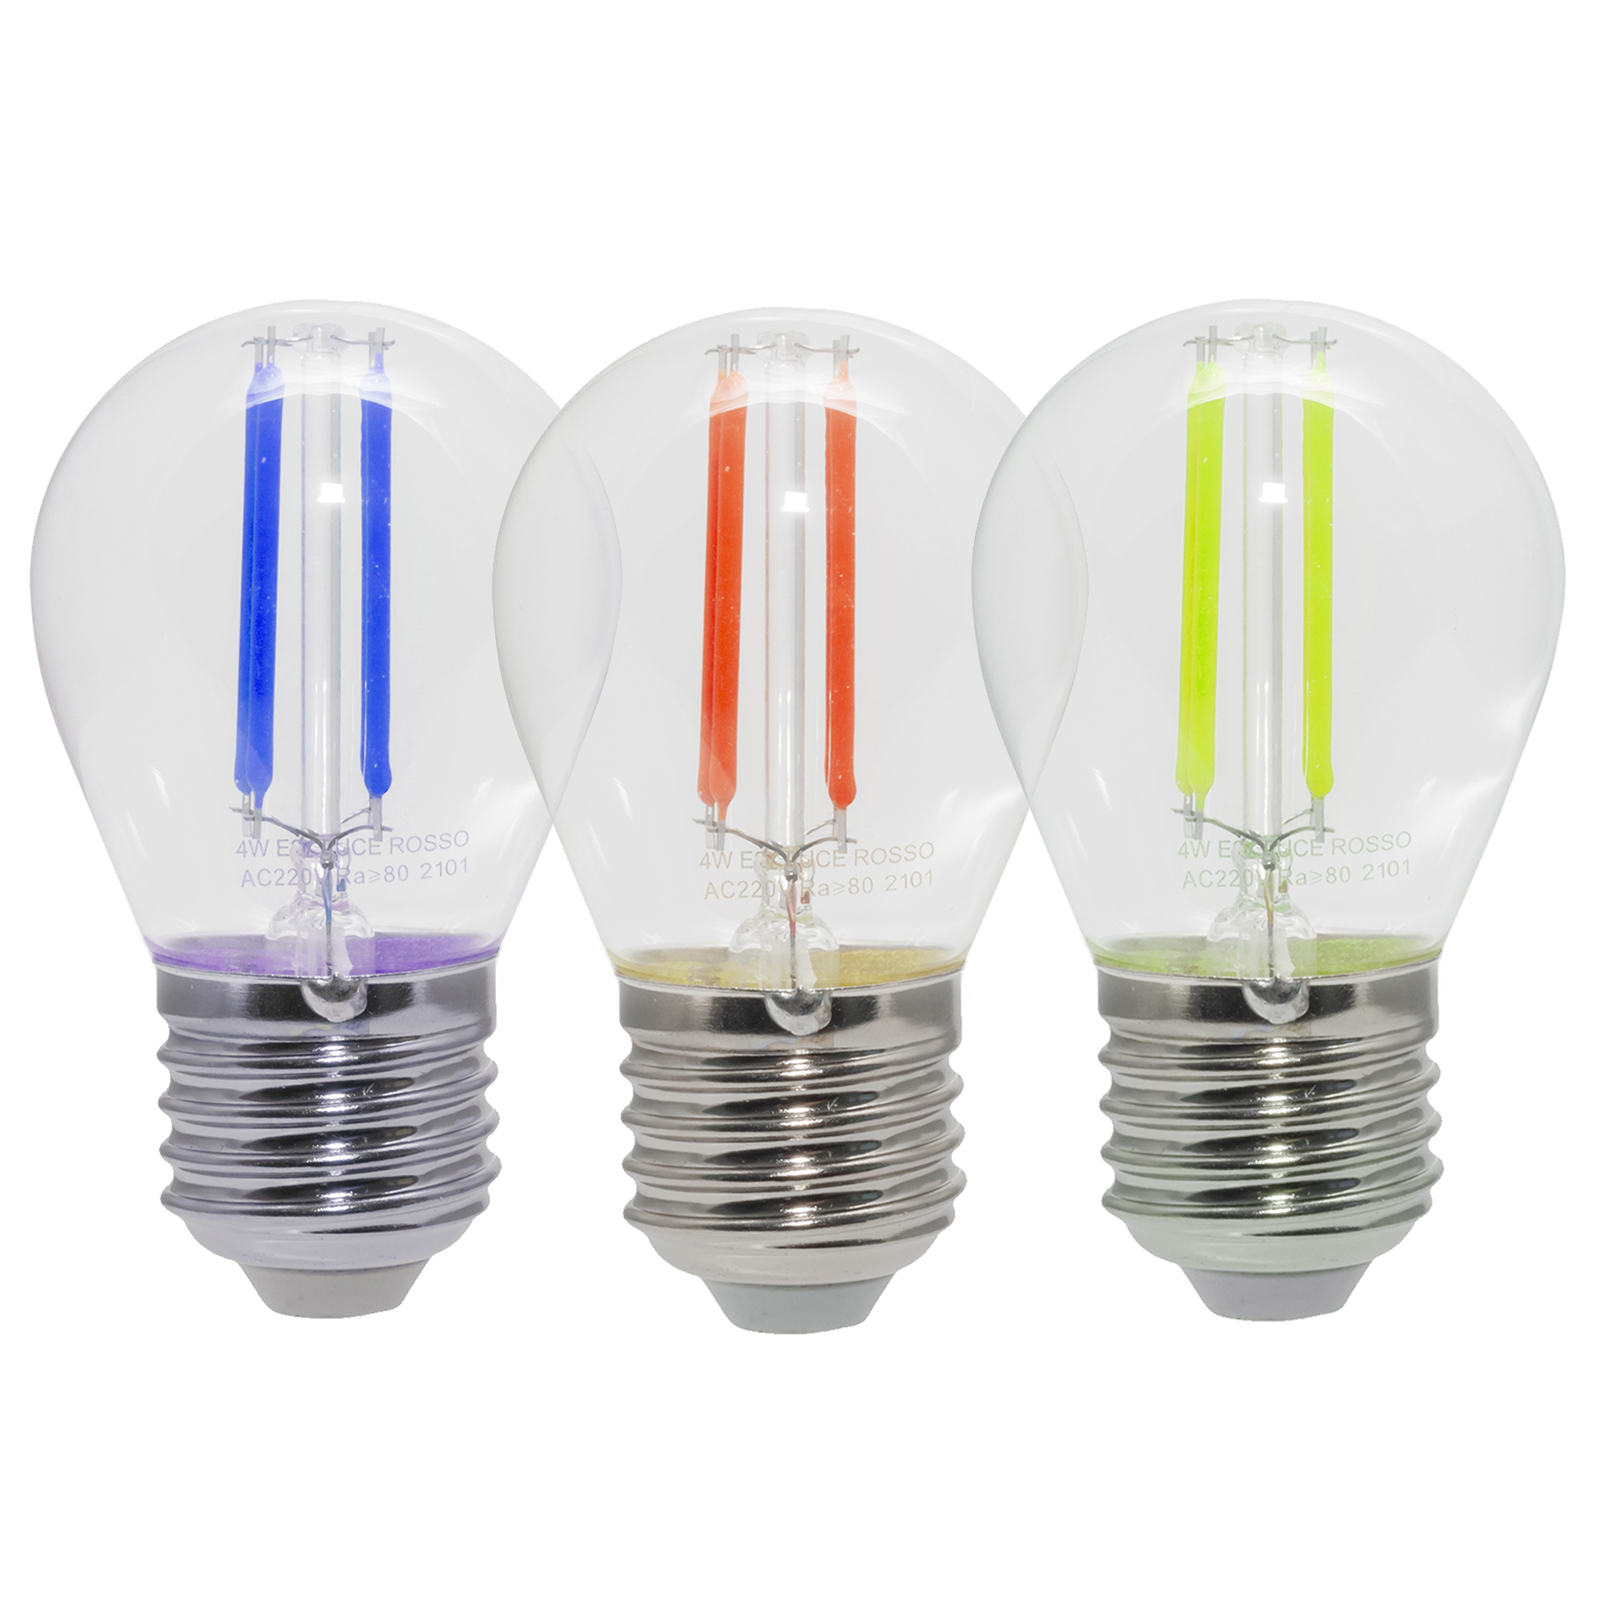 4W glass LED wire bulb decorative colored light 360 degrees E27 red green blue 230V light chain